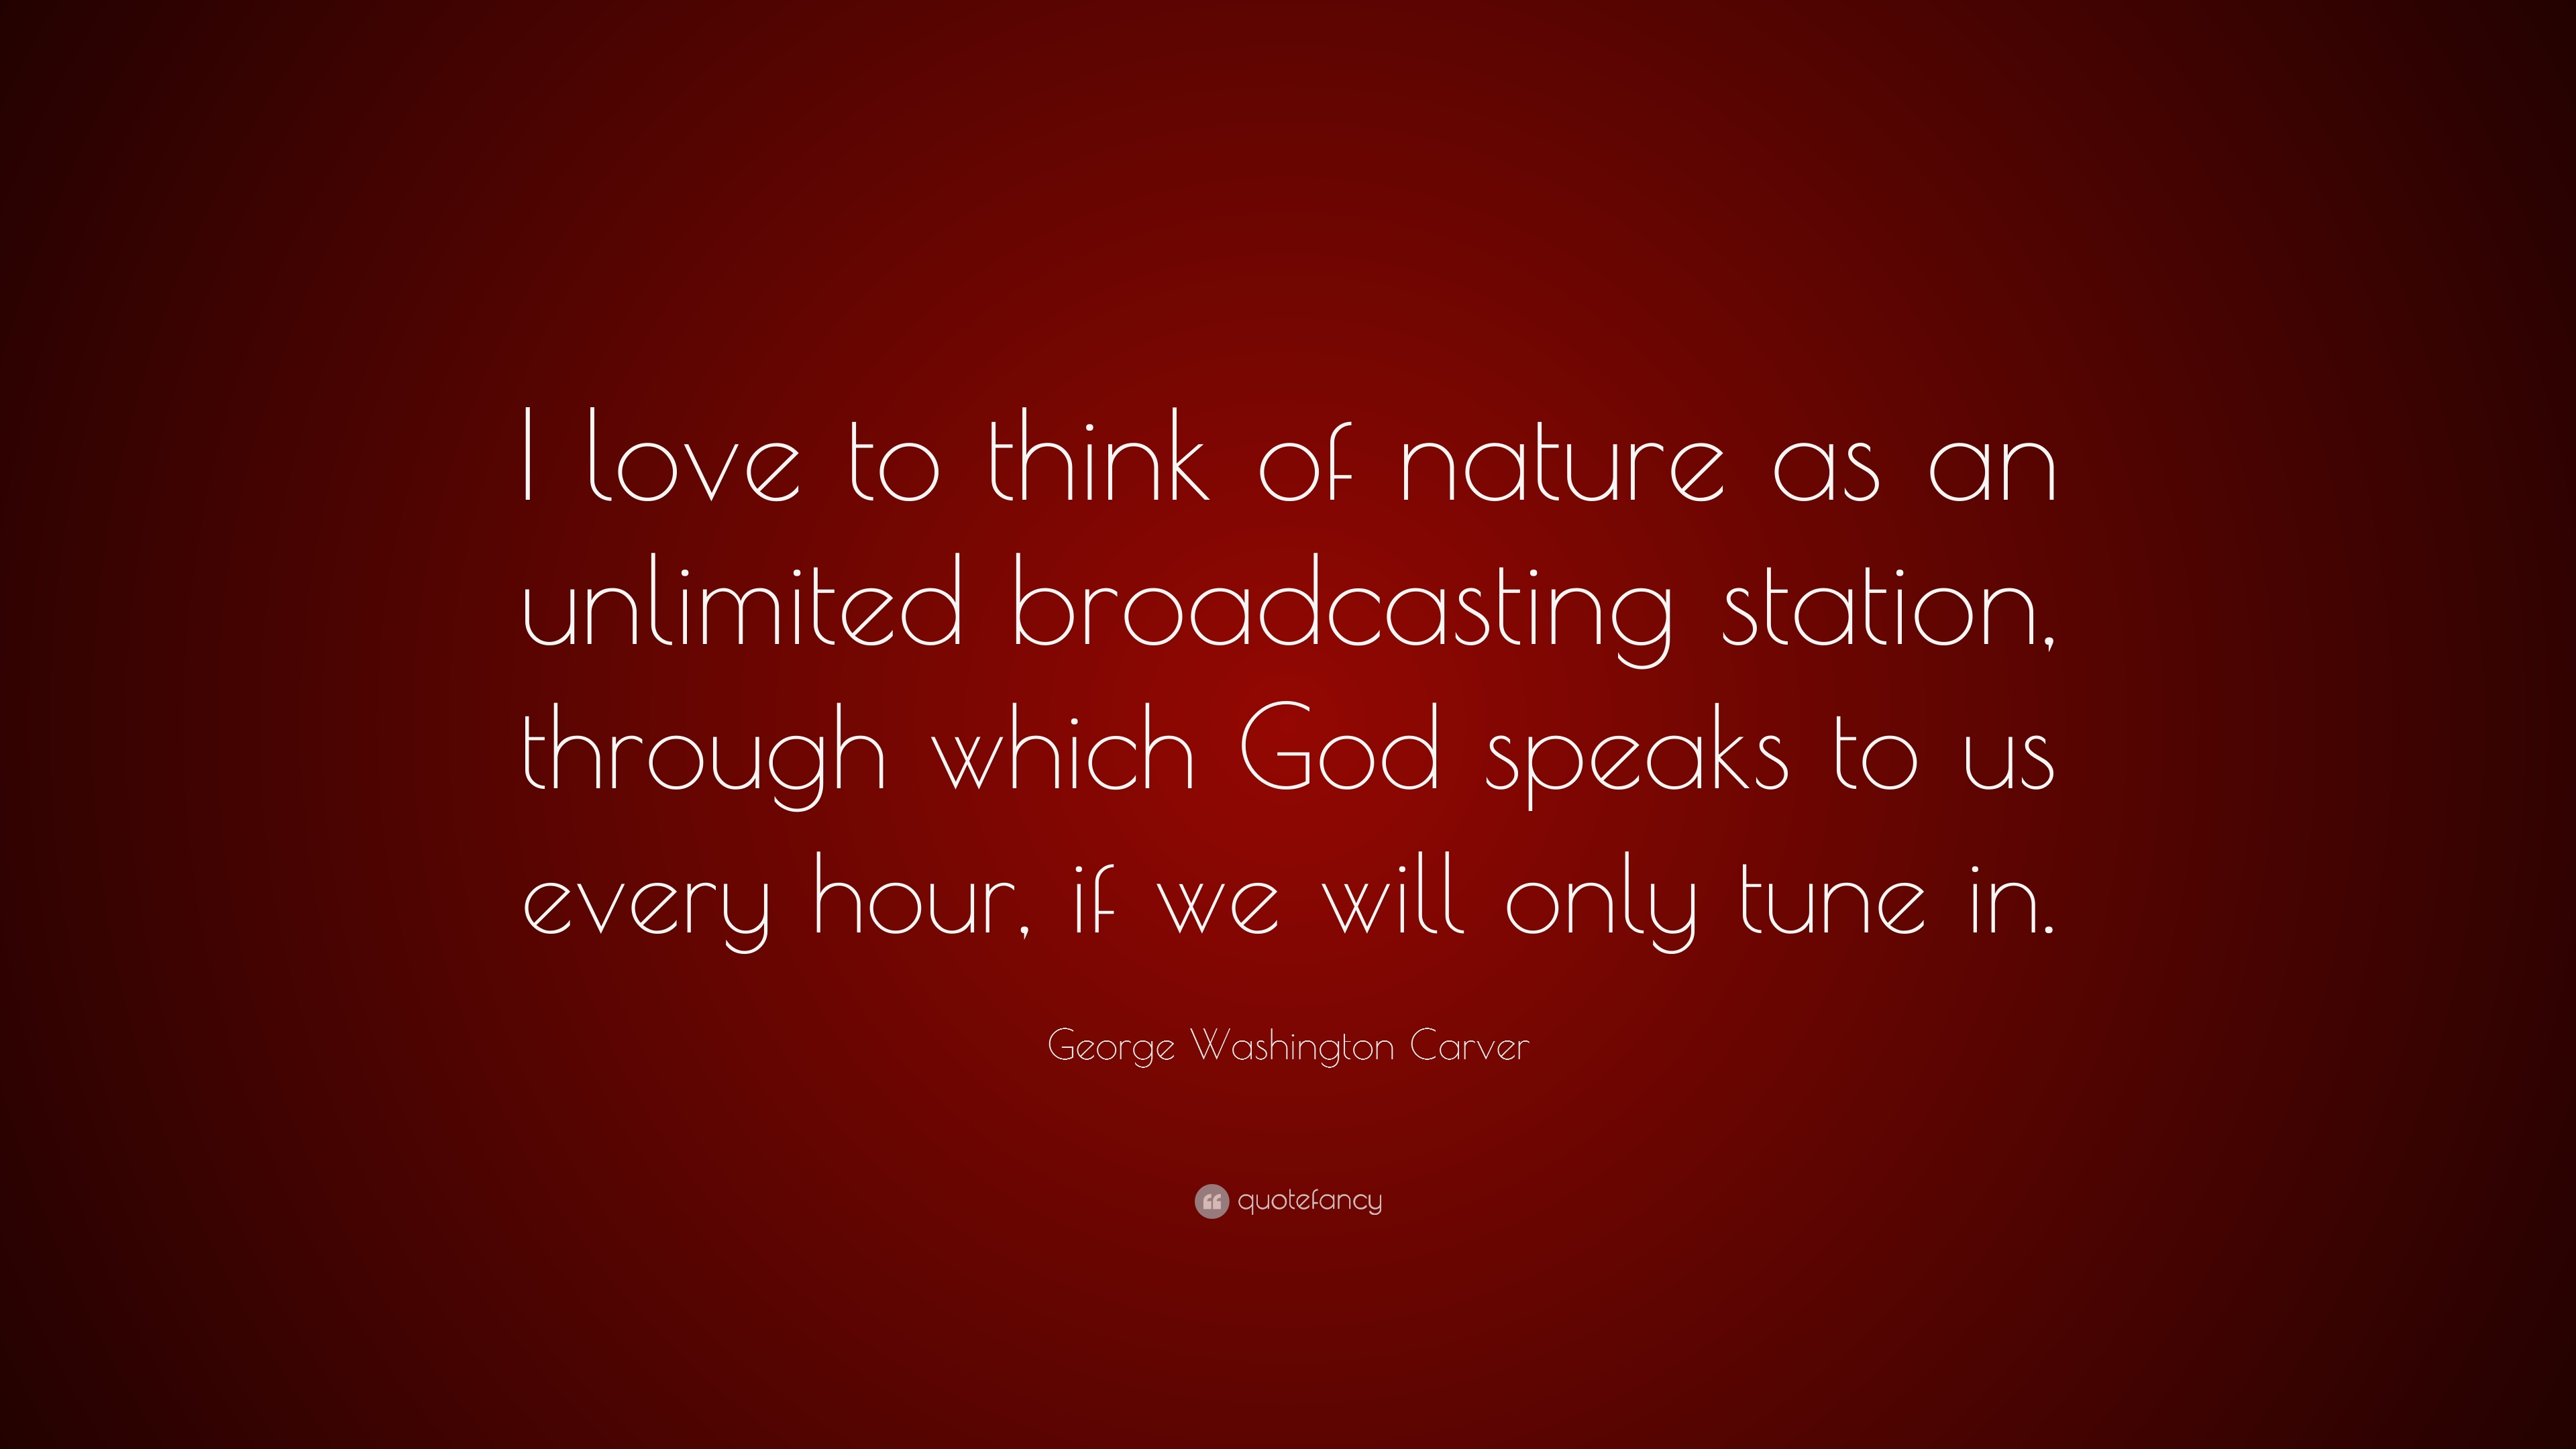 george washington carver quote ldquo i love to think of nature as an george washington carver quote ldquoi love to think of nature as an unlimited broadcasting